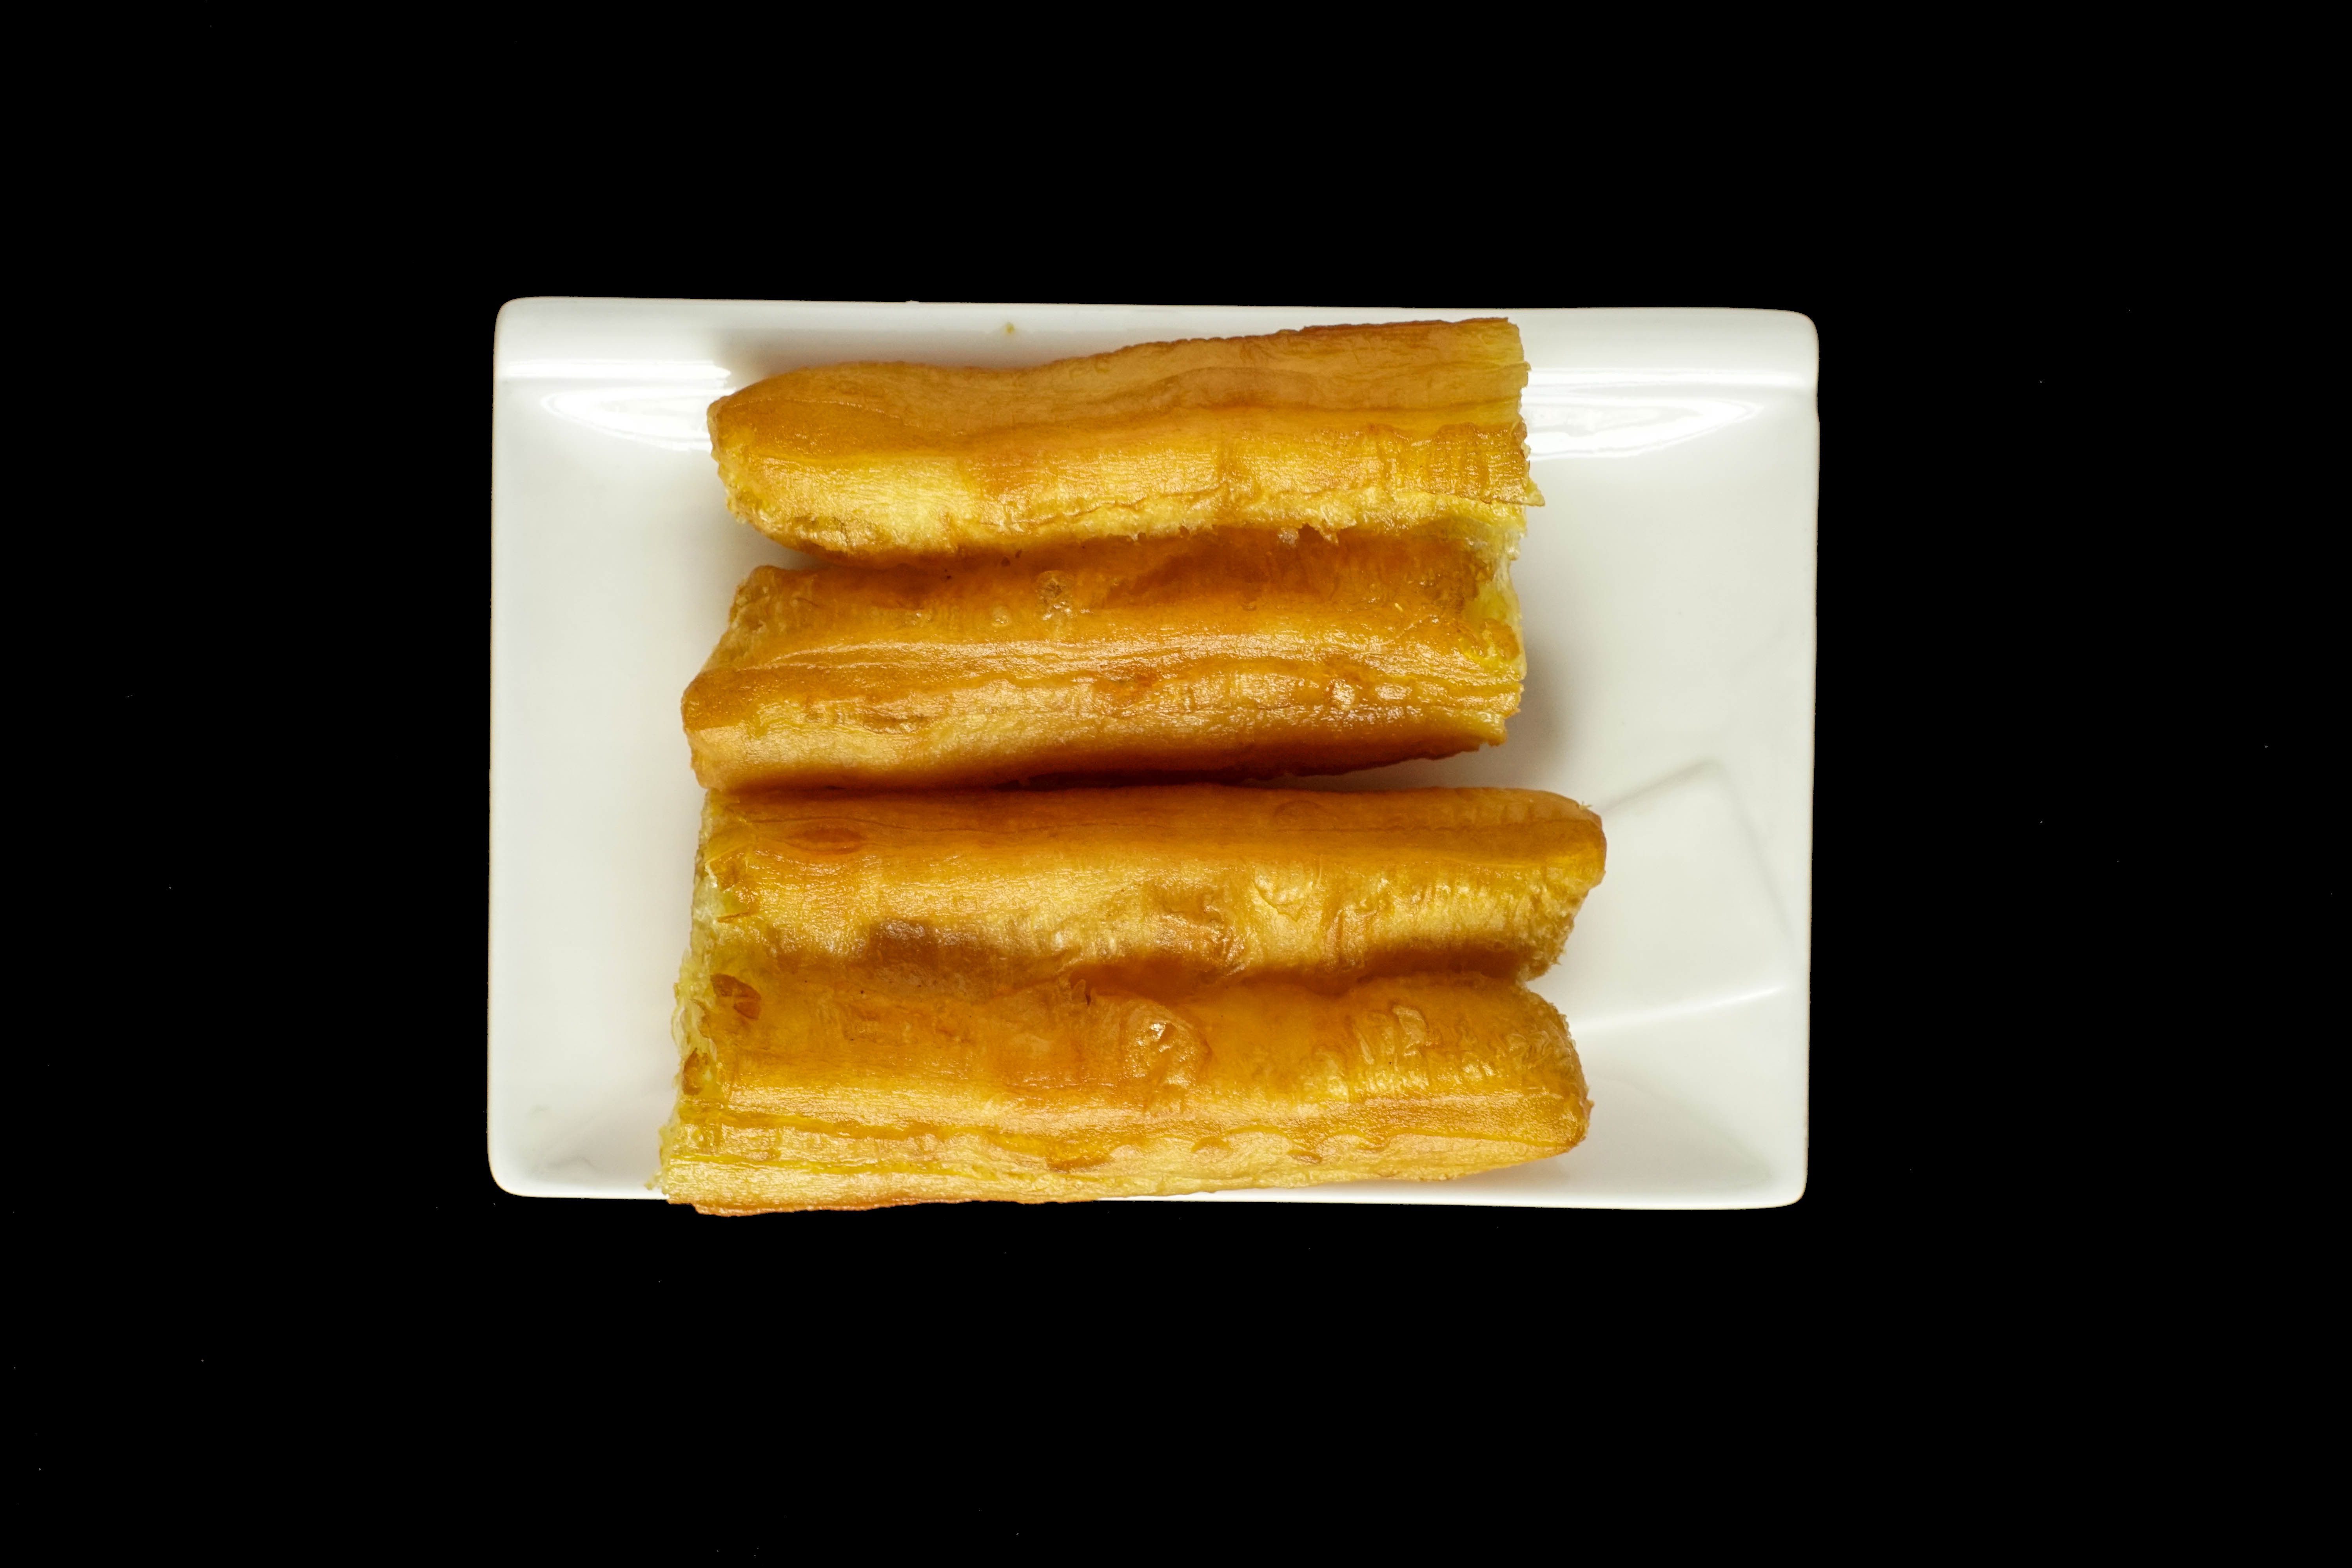 113. 油条 Fried Bread Image